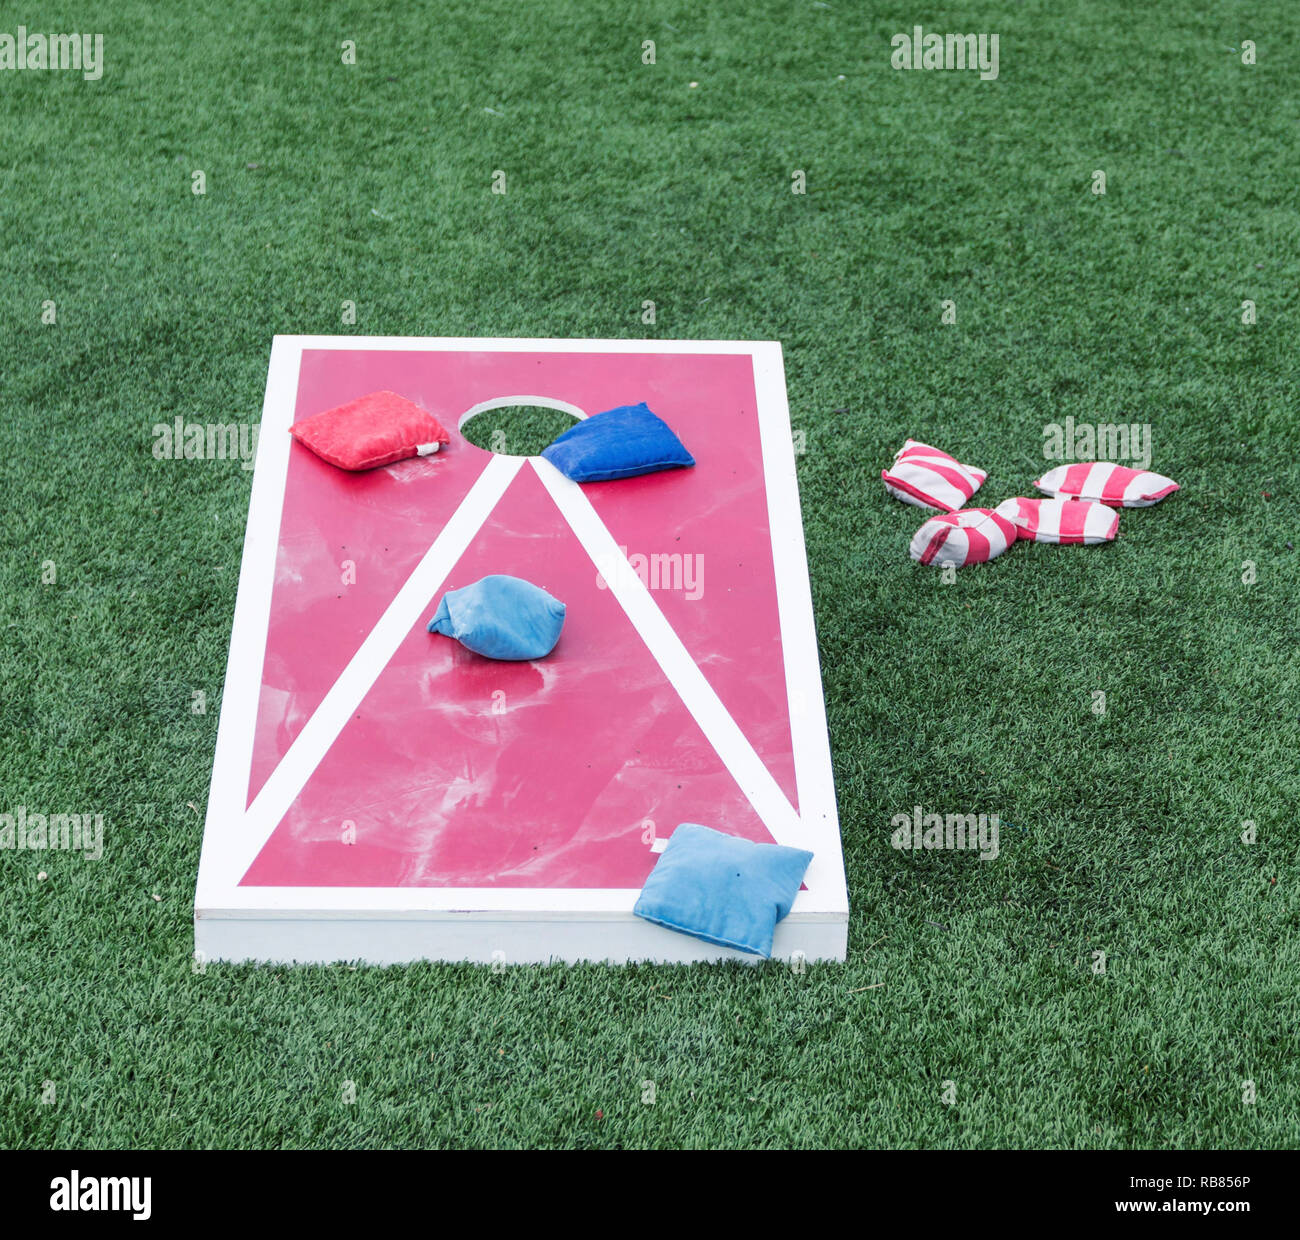 Playing the popular game corn hole on a red and white wood board with blue and red striped bean bags on turf. - Stock Image